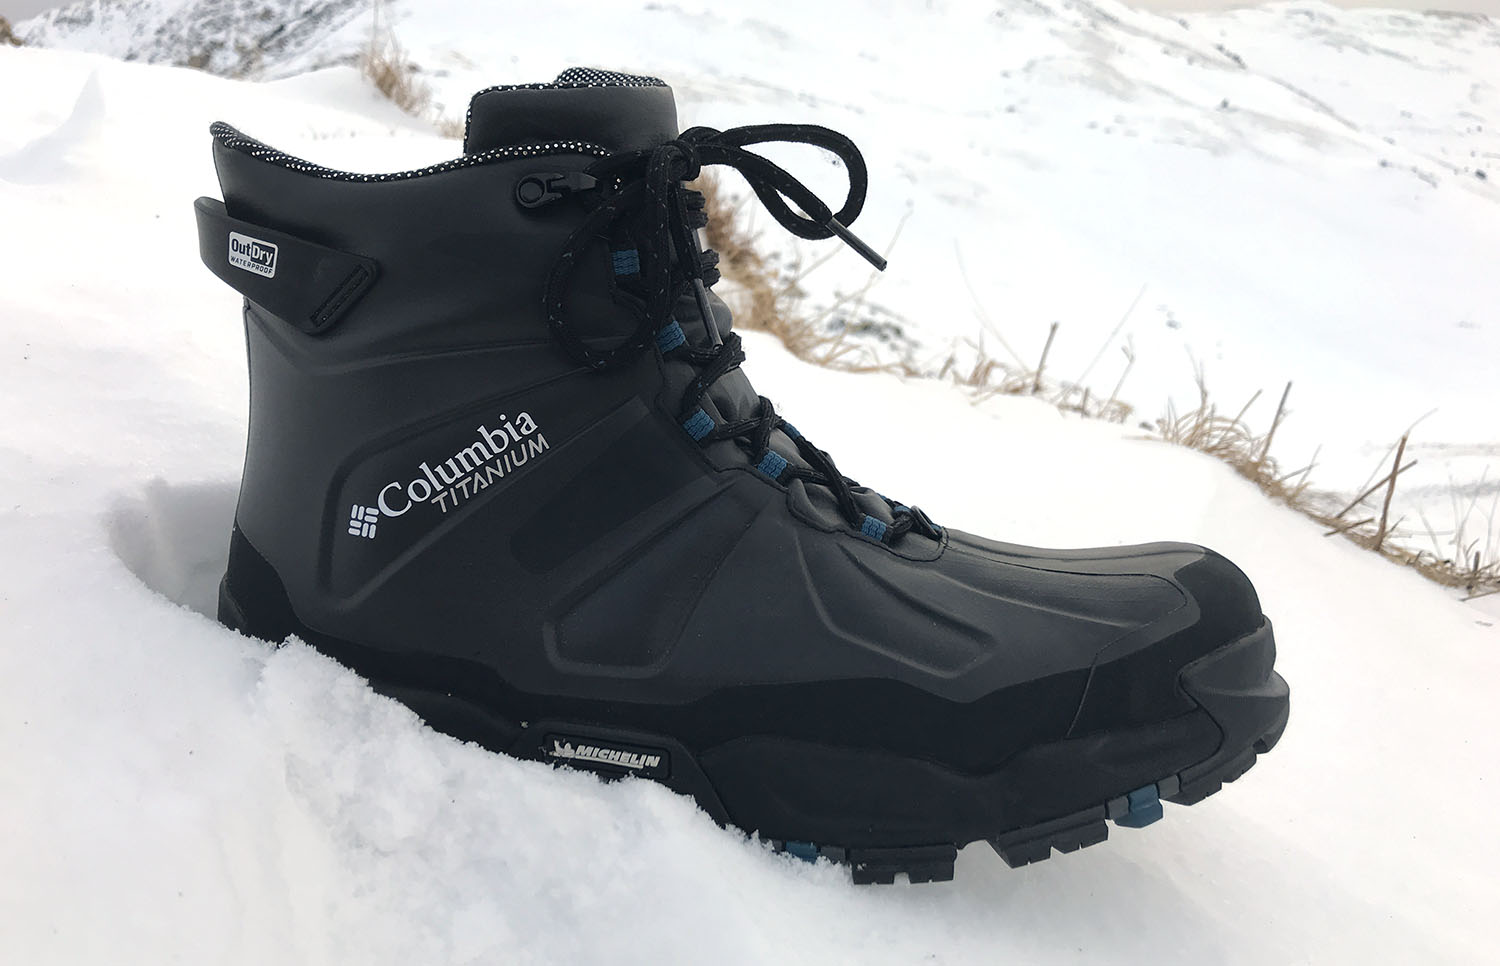 f18503c8dc1 Best Winter Boots for Men | GearJunkie